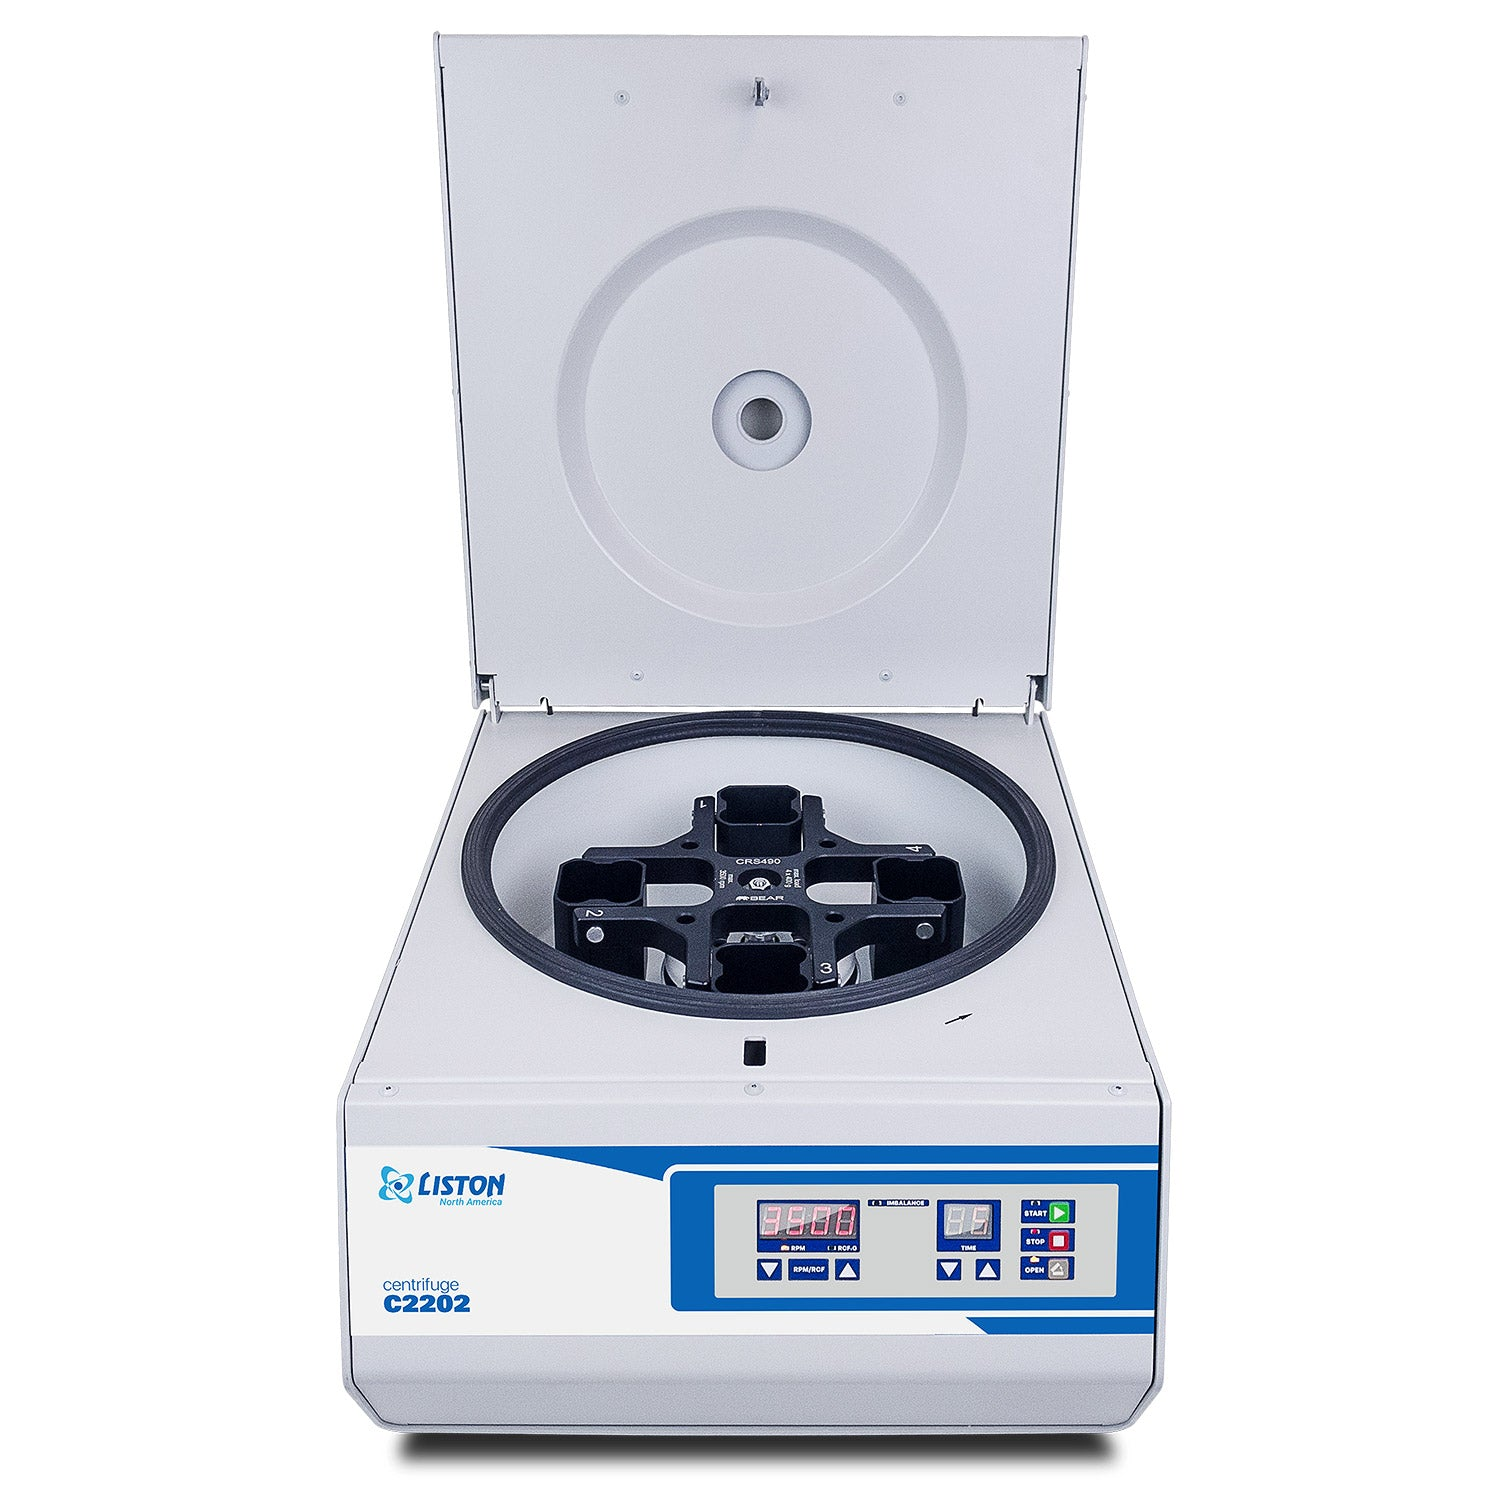 LISTON C2202 | Swing-Out Benchtop Centrifuge with Rotor Included for Clinical and Research Use